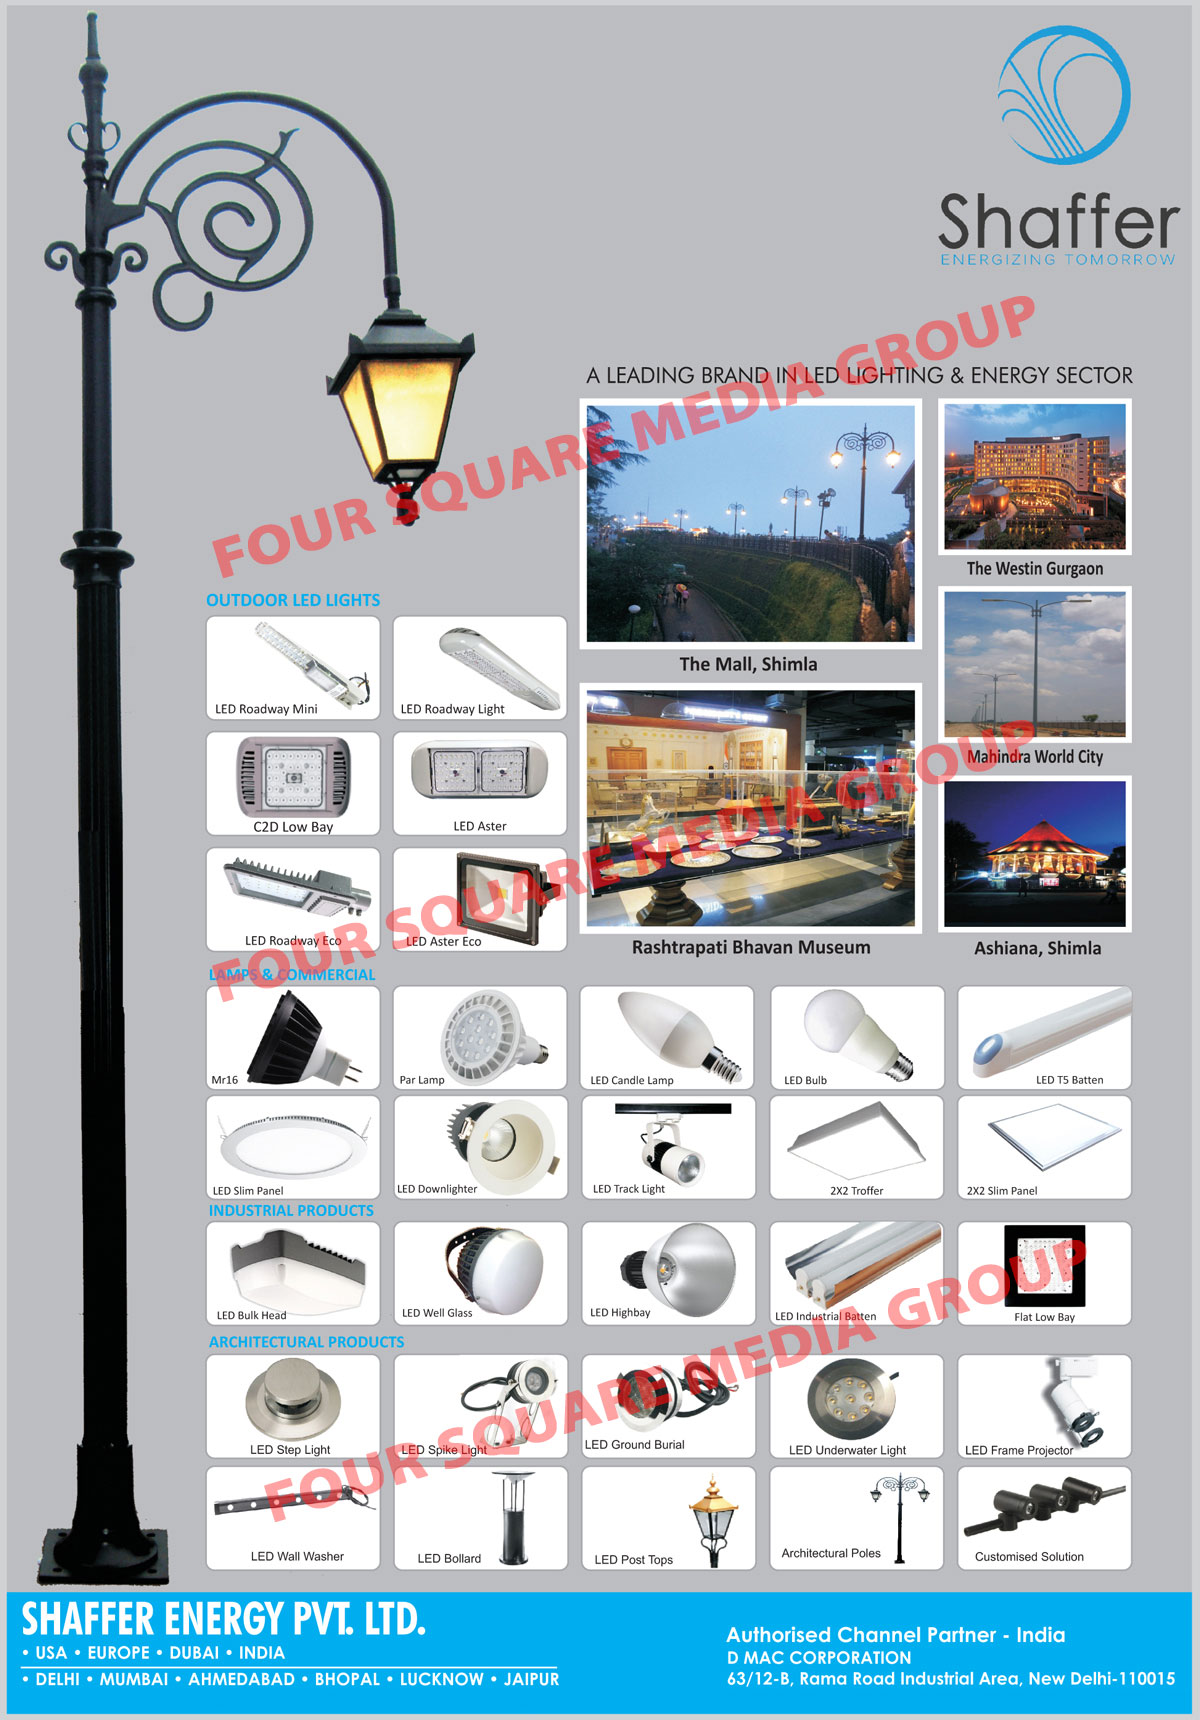 Led Lights, Led Outdoor Lights, Outdoor Led Lights, Led Roadway Lights, Led Roadway Mini Lights, Led C2D Low Bay Lights, Led Aster Lights, Led Roadway Eco Lights, Led Aster Eco Lights, Led Lamps, Led Commercial Lights, Commercial Led Lights, Par Lamps, Led Candle Lamps, Led Bulbs, Led T5 Batten Lights, Led Slim Panels, Led Slim Panel Lights, Slim Led Panel Lights, Led Down Lighters, Led Downlighters, Led Track Lights, Troffer Lights, Led Slim Panels, Led Slim Panel Lights, Led Industrial Lights, Led Bulk Head Lights, Led Well Glass Lights, Led High Bay Lights, Led Industrial Batten Lights, Led Flat Low Bay Lights, Flat Led Low Bay Lights, Led Architectural Products, Led Step Lights, Led Spike Lights, Led Ground Burial Lights, Led Underwater Lights, Led Frame Projector Lights, Led Wall Washer Lights, Led Bollard Lights, Led Post Top Lights, Led Architectural Pole Lights, Customised Solutions